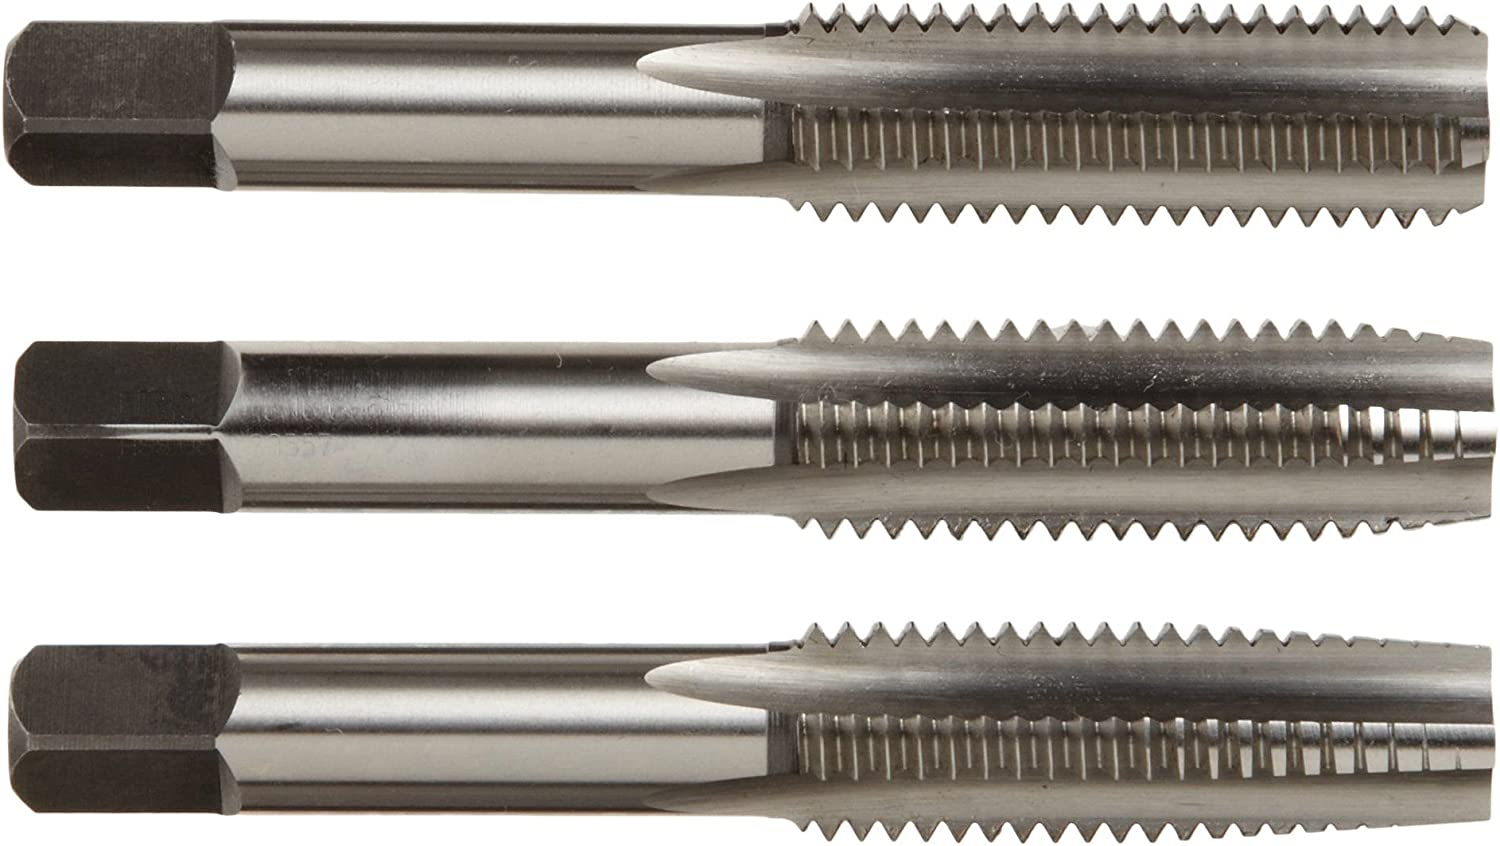 10-32 NF Carbon Steel Tap Set 3PC Taper Plug /& Bottom USA Made Irwin 2531